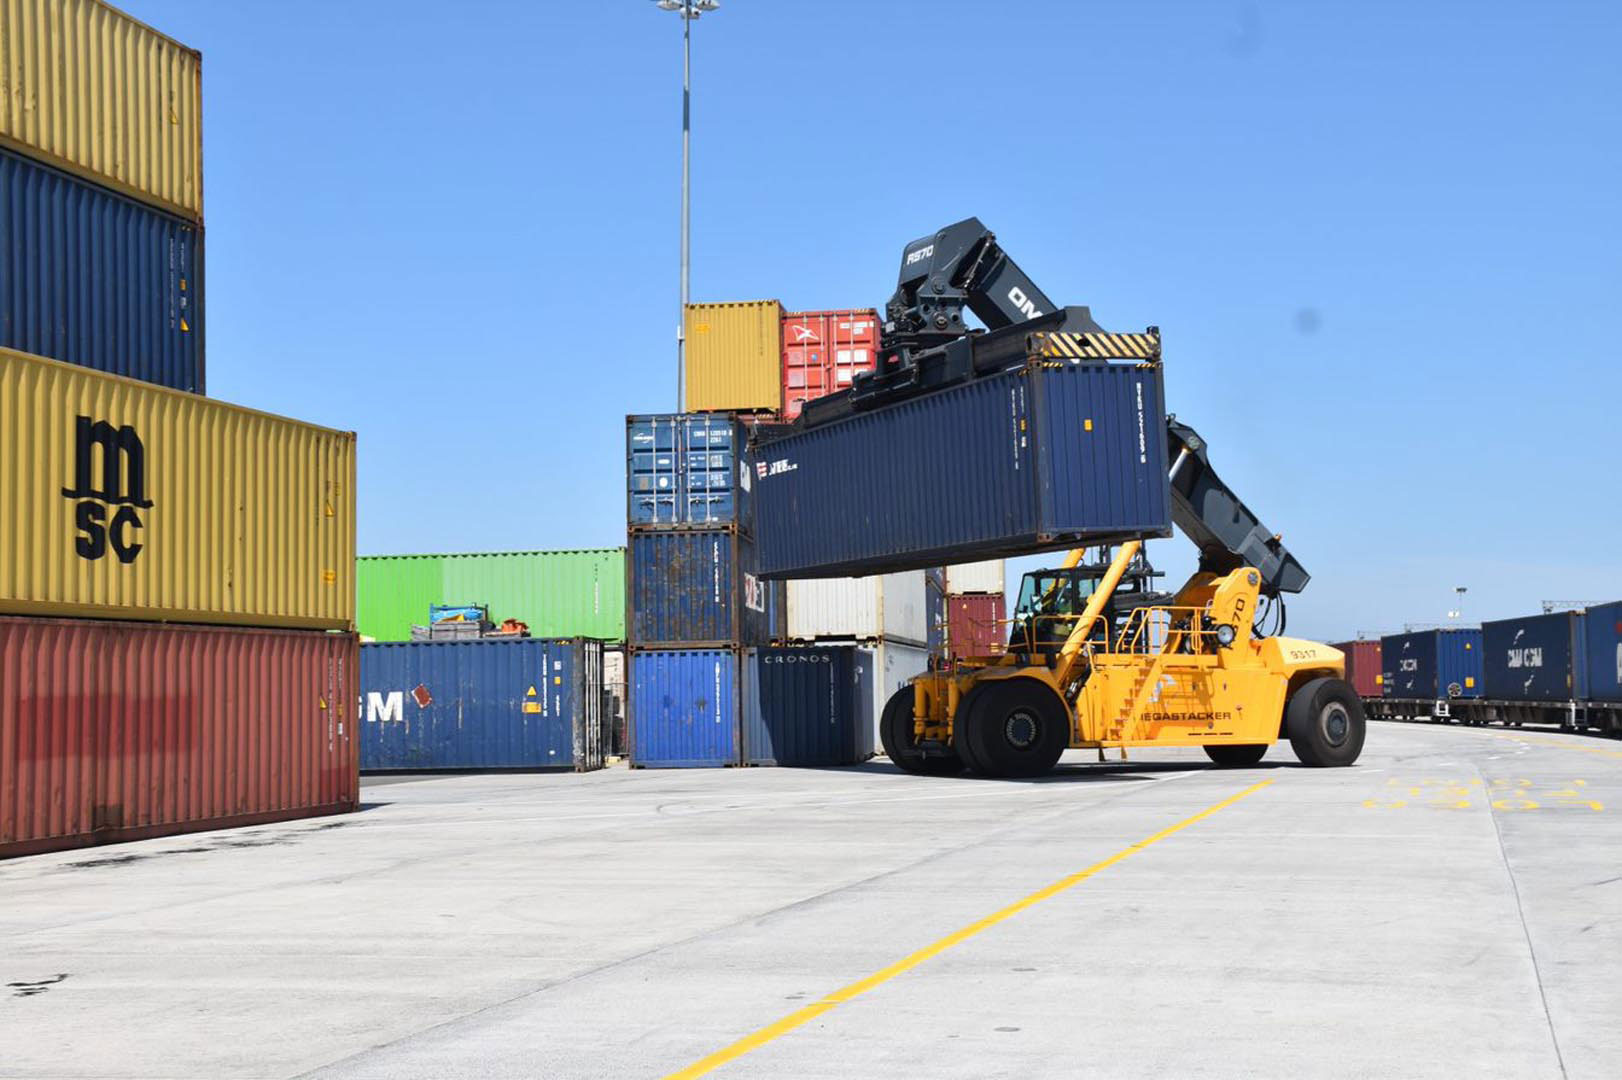 Sydney's trusted container transport company, delivering your cargo across Australia